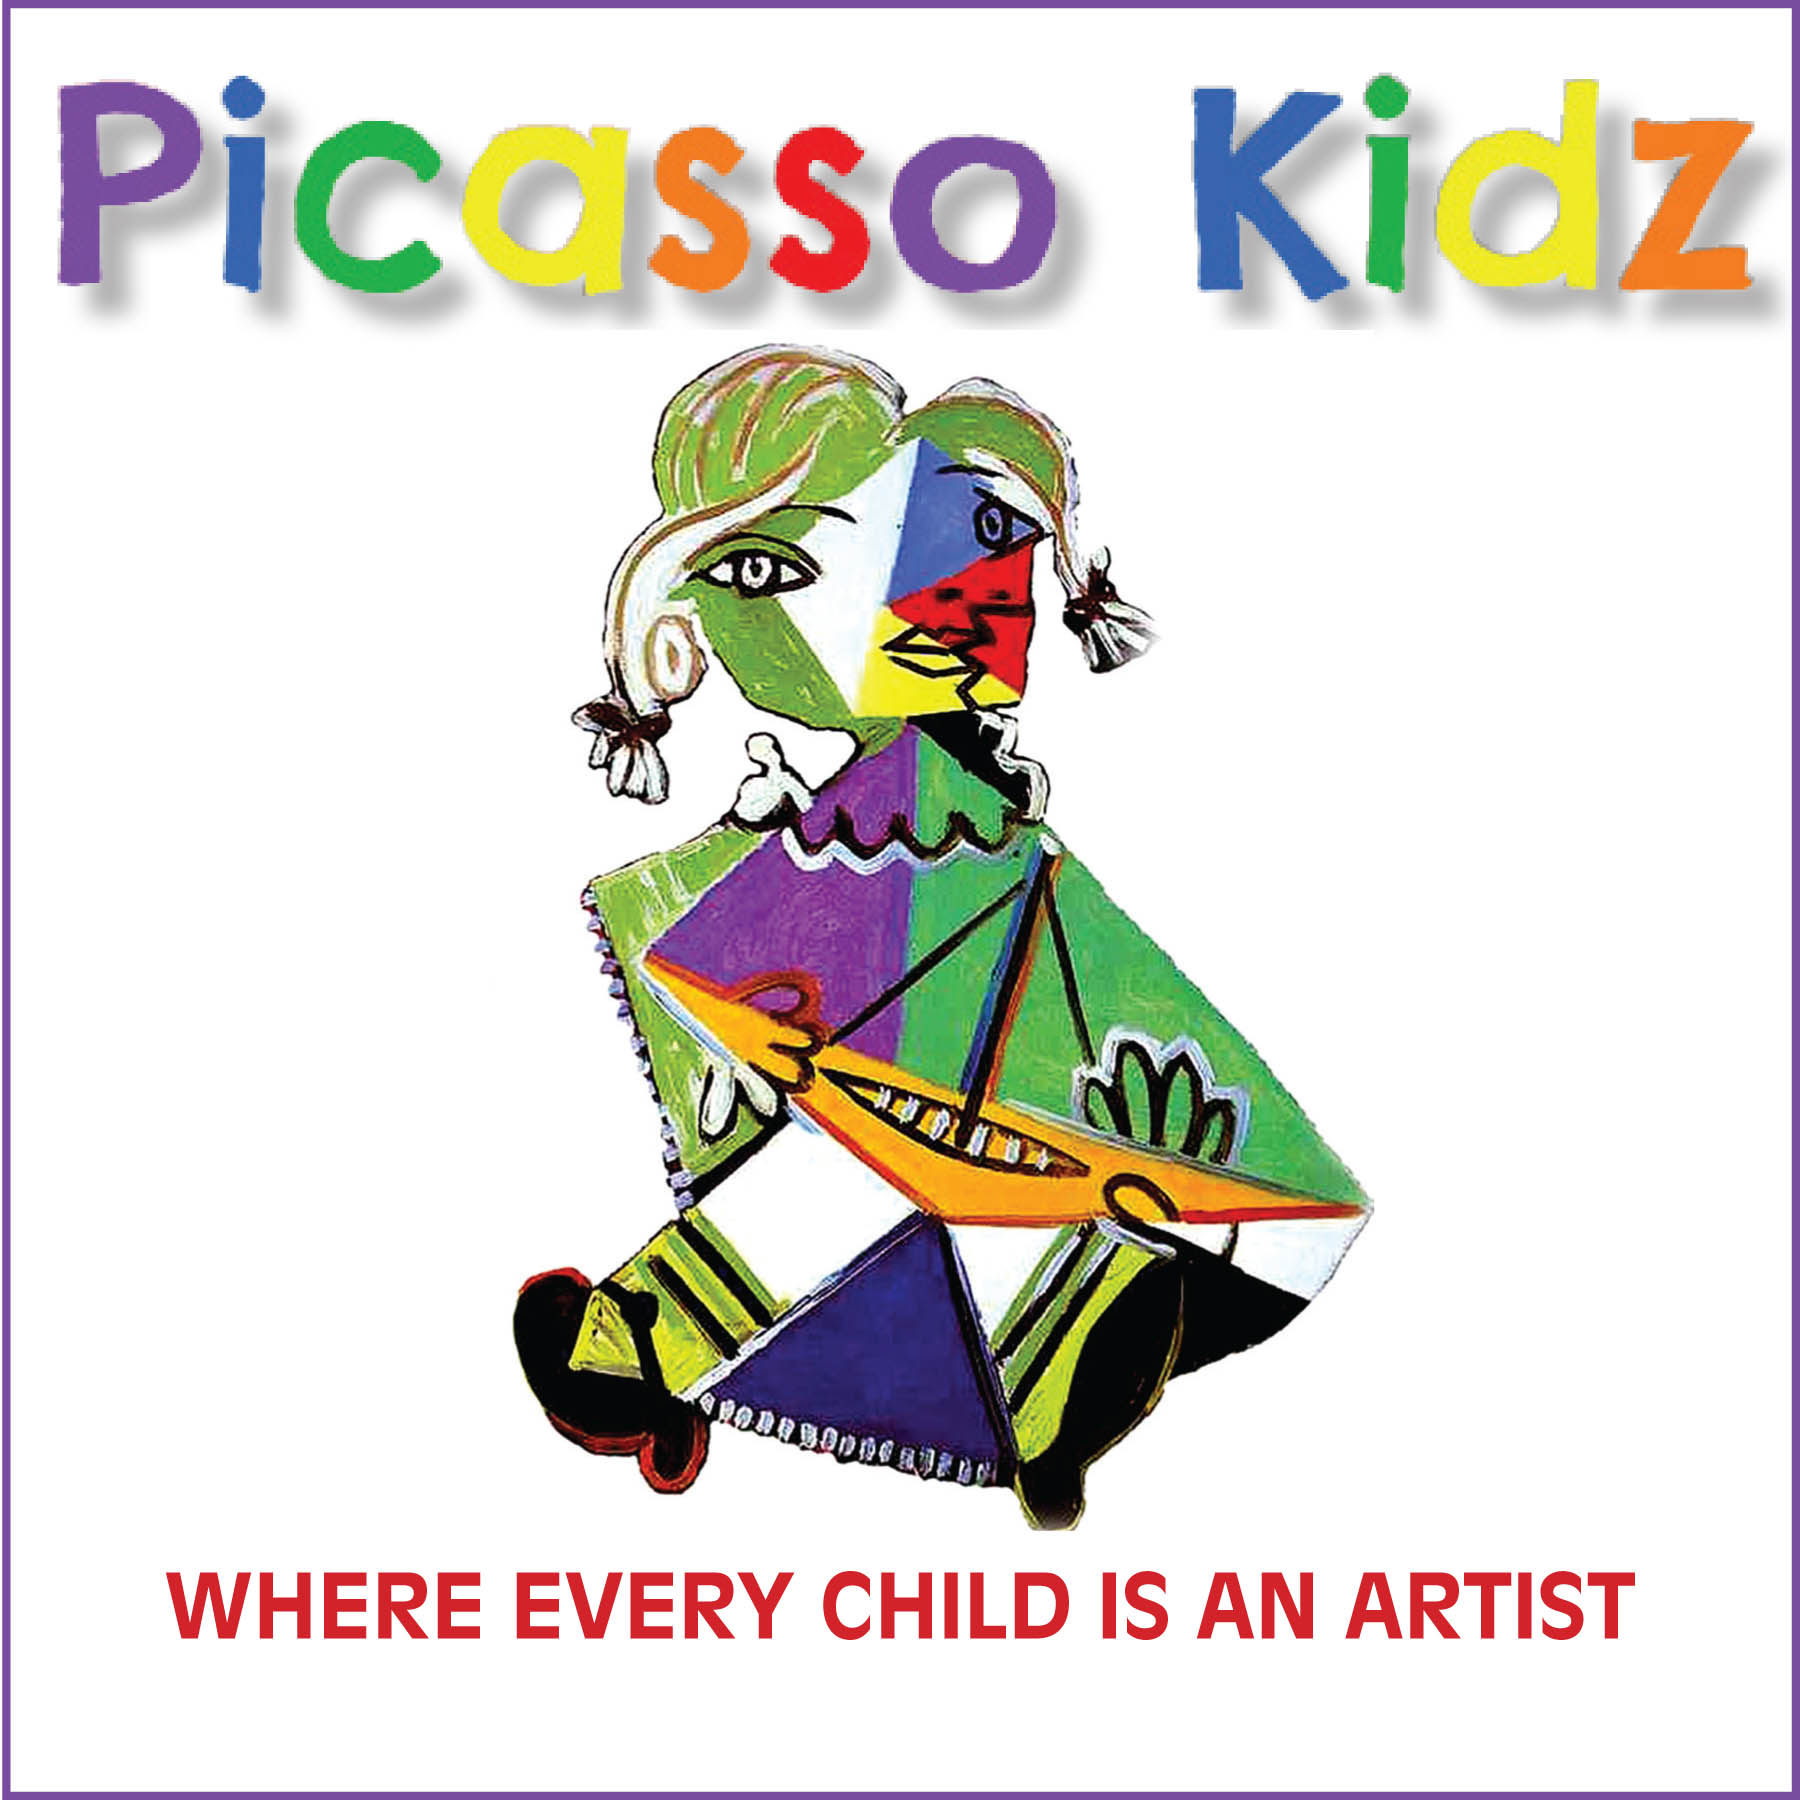 Picasso Kidz, creative art studio for children